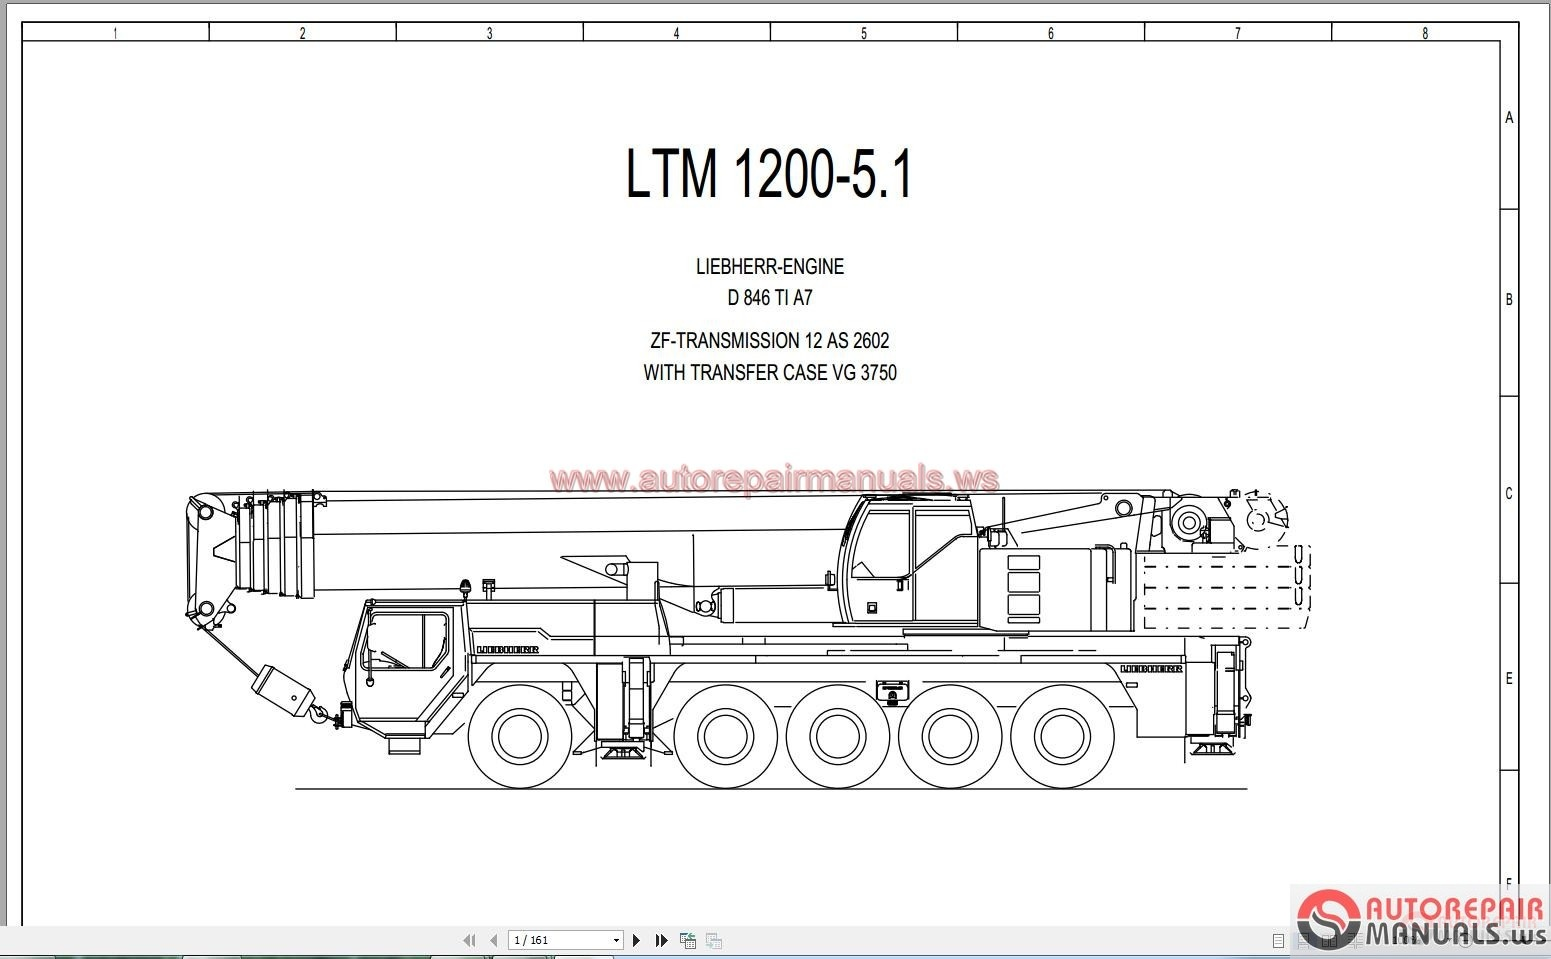 Liebherr Machine Crane Full Shop Manual also Deutz Full Set Shop Manual Dvd in addition Parts Of A Telehandler additionally Caterpillar Equipment Diagrams as well Forklift Course From Humber College Toronto. on jcb forklift manuals